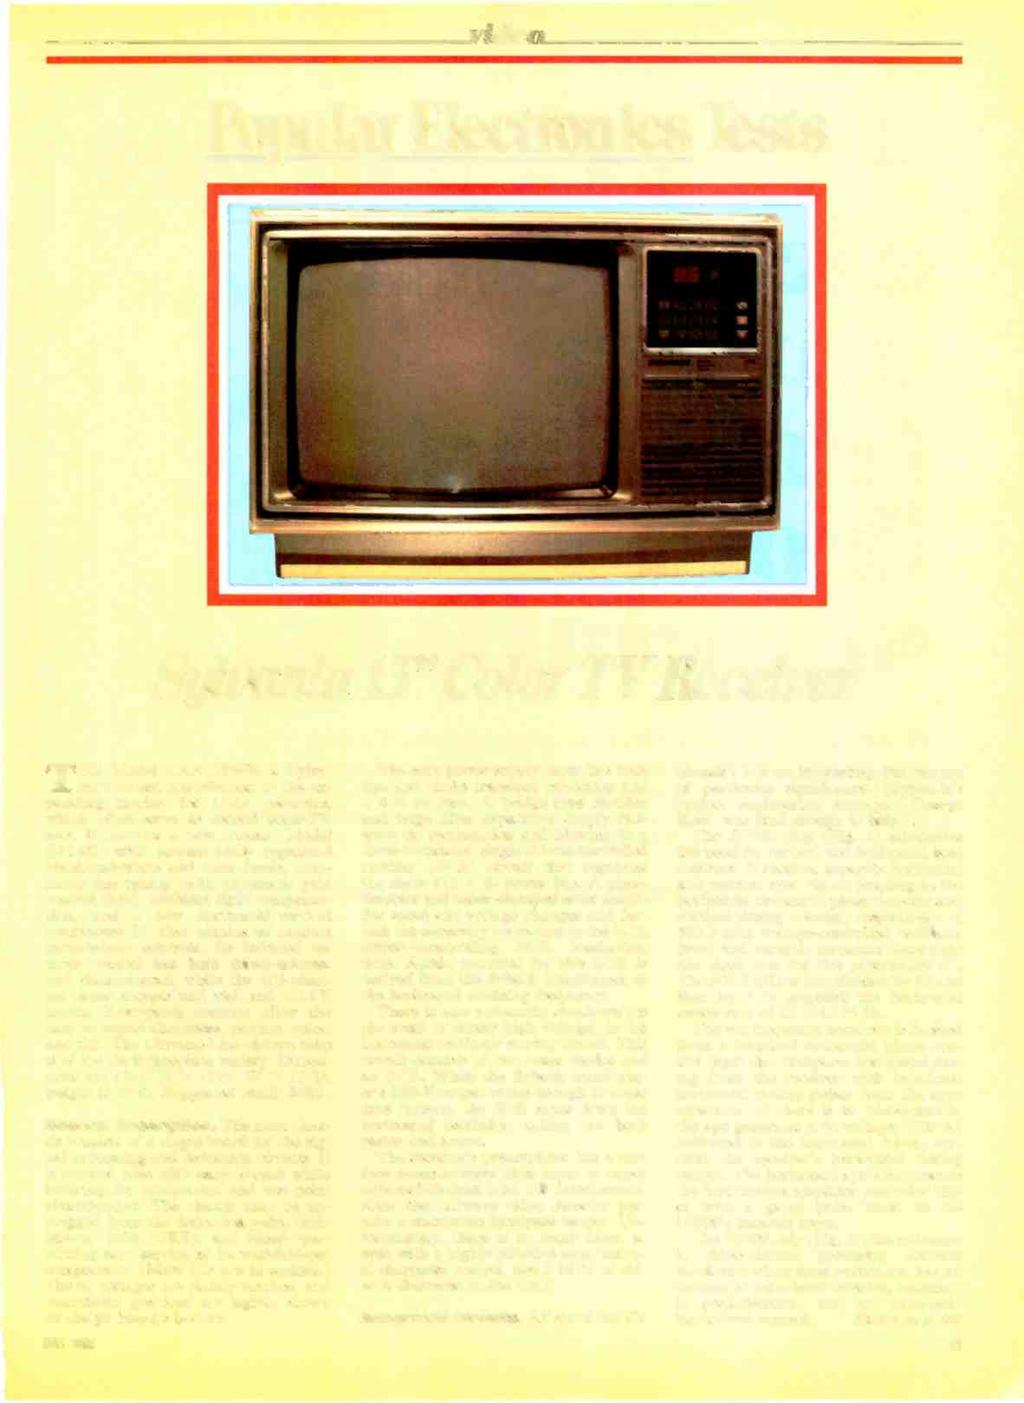 Coniesg Worlds Largest Selling Electronics Magazine May 1982 1 Pdf Home Gt Integrated Circuits 7403 Video Popular Tests